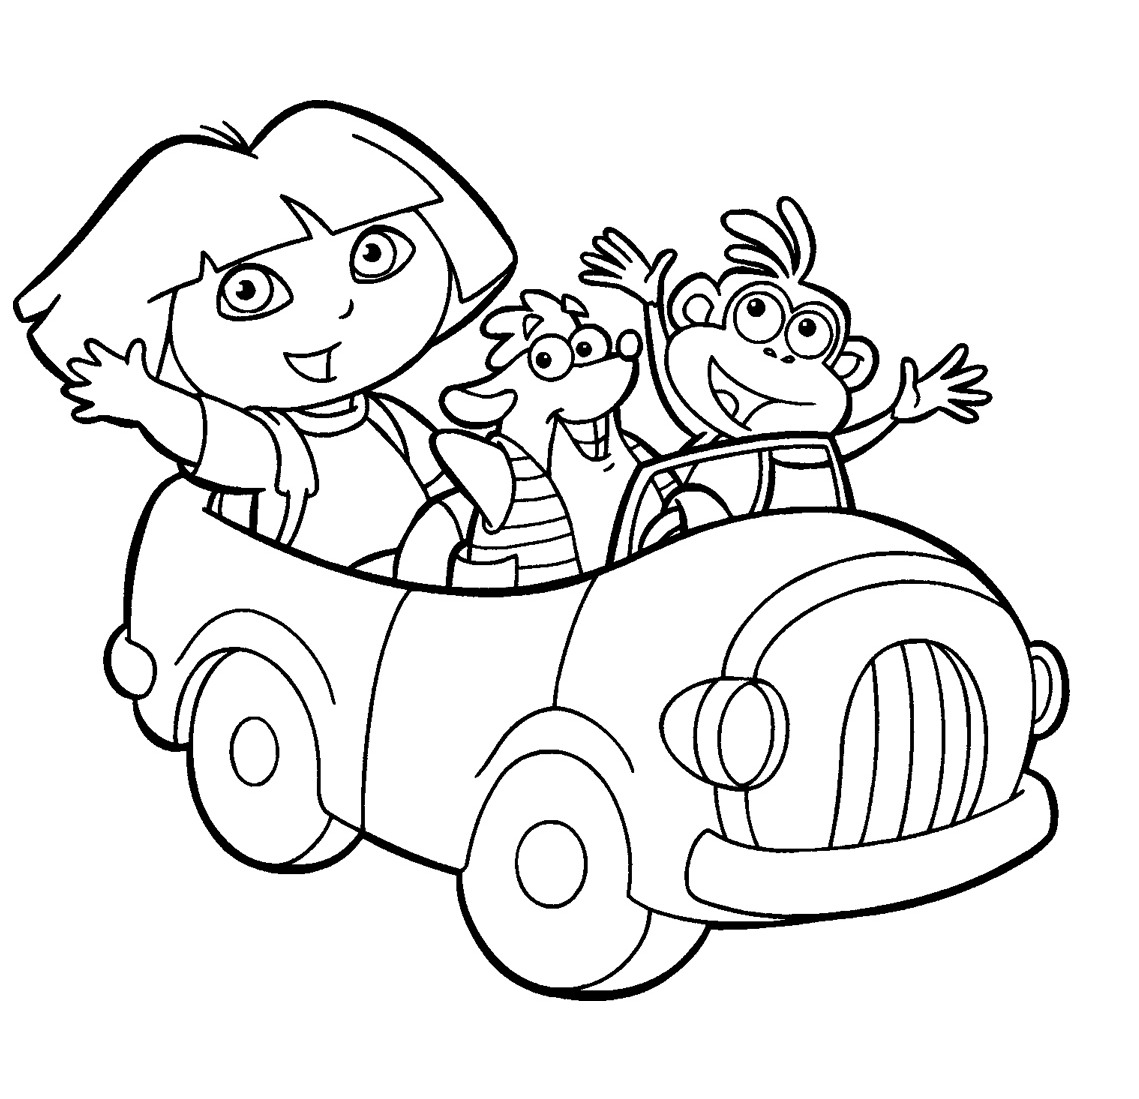 dora colouring pages printable dora 9 coloringcolorcom dora pages printable colouring